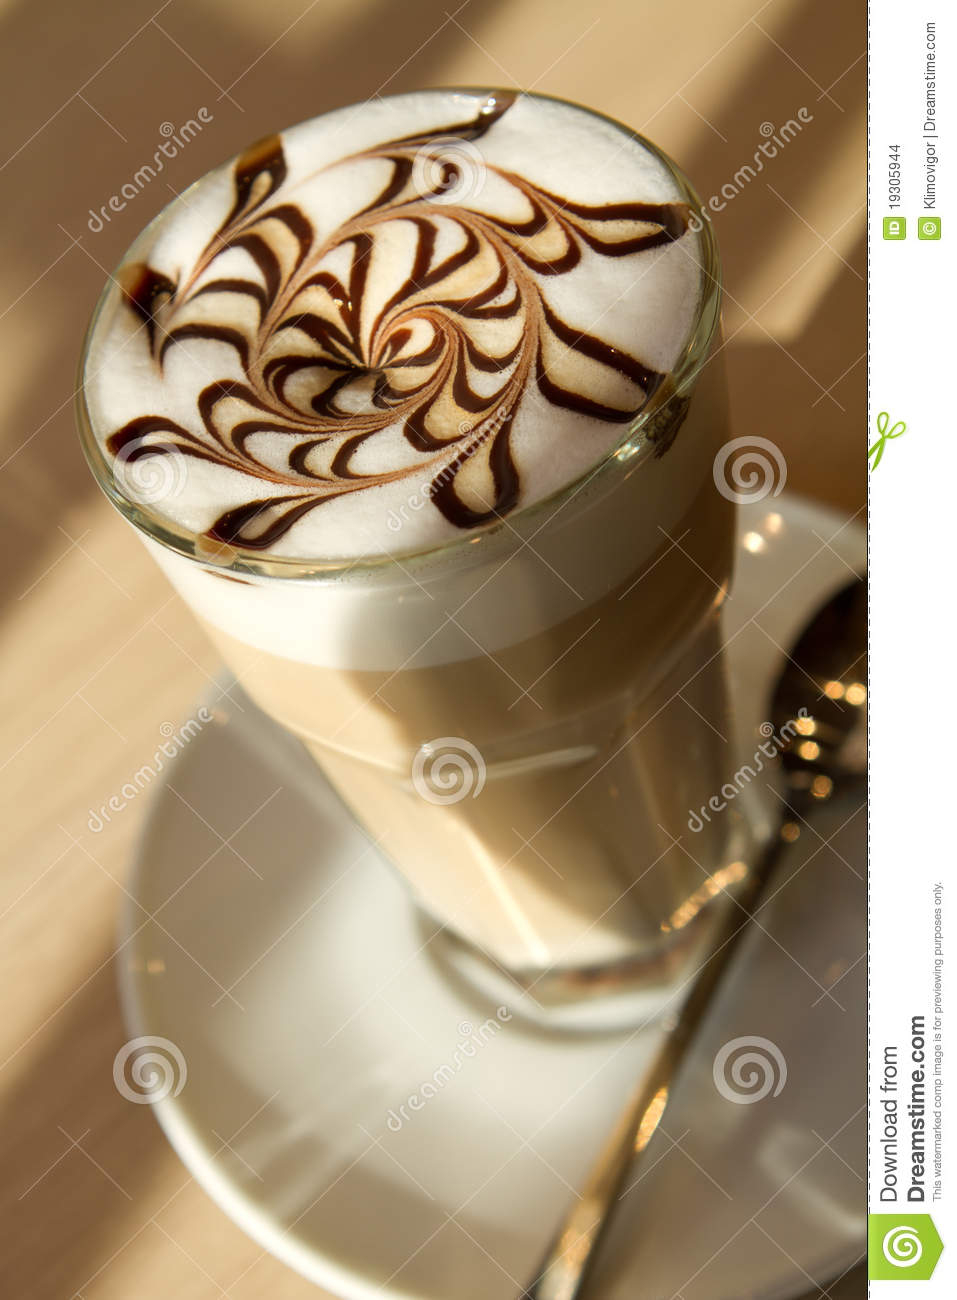 Cafe Latte Stock Photo Image Of Chocolate Sugar Table